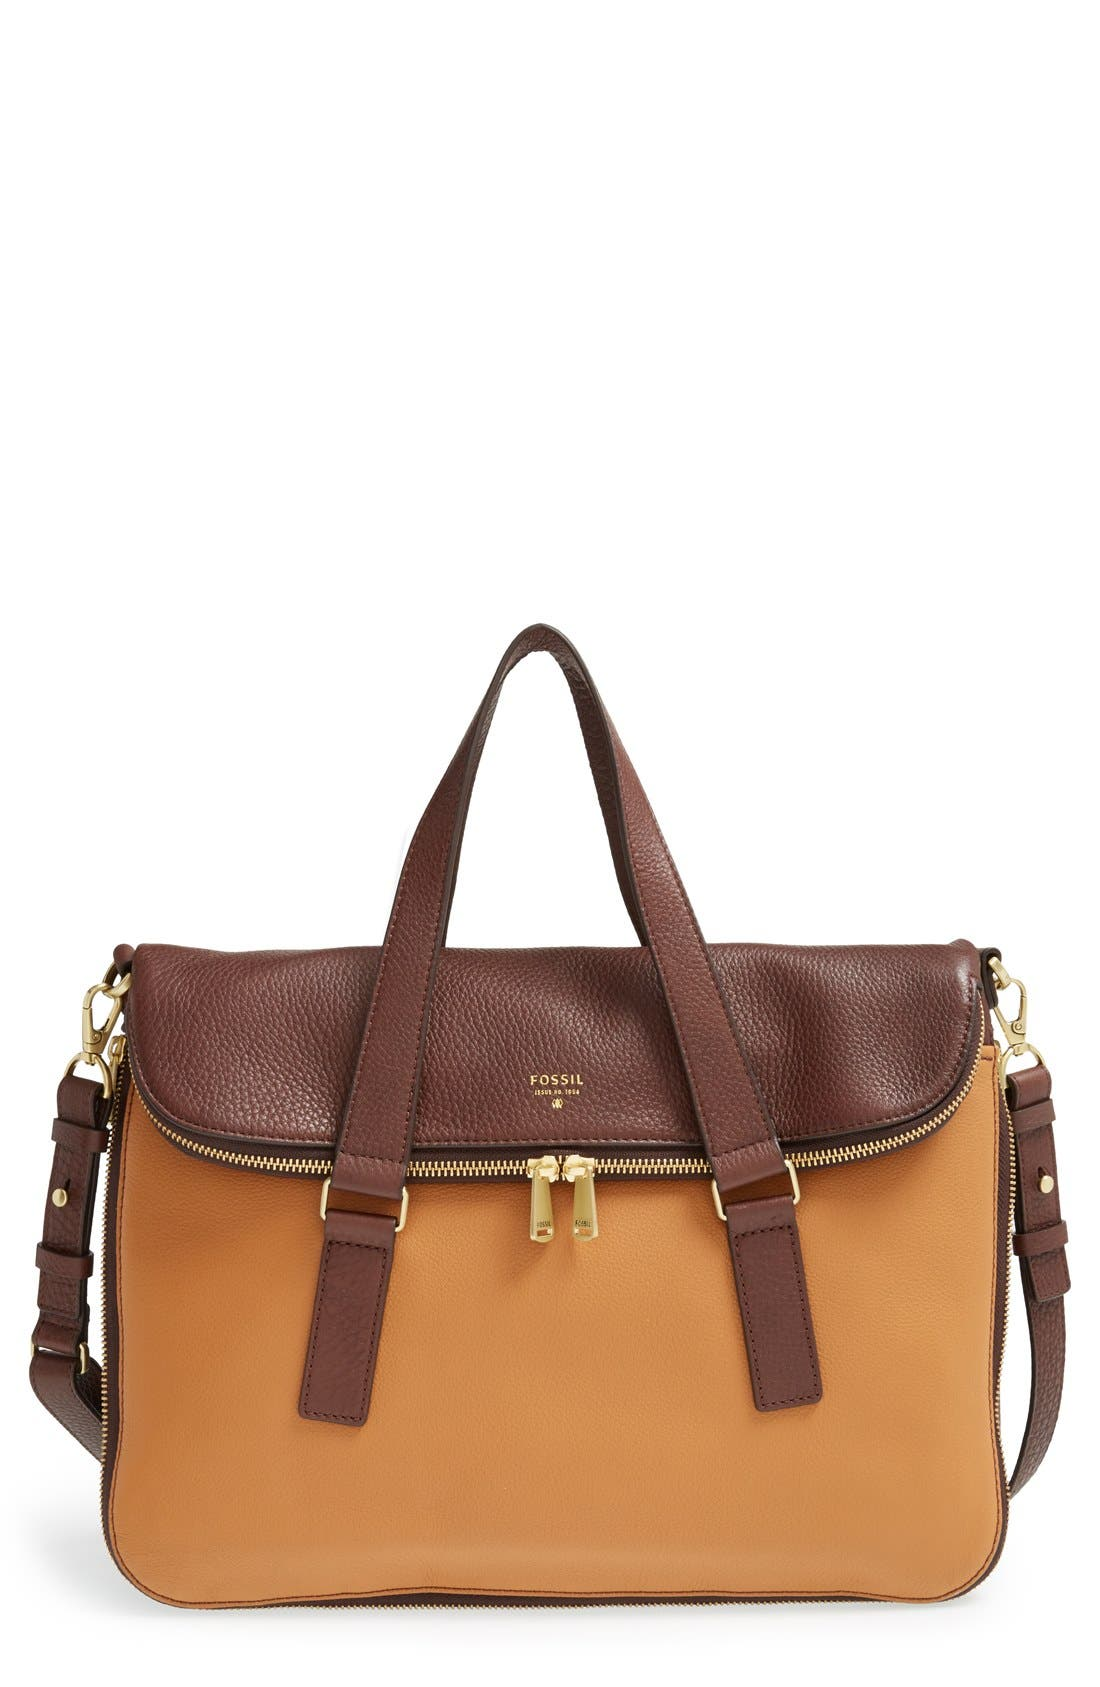 Main Image - Fossil 'Preston' Foldover Leather Tote (Online Only)